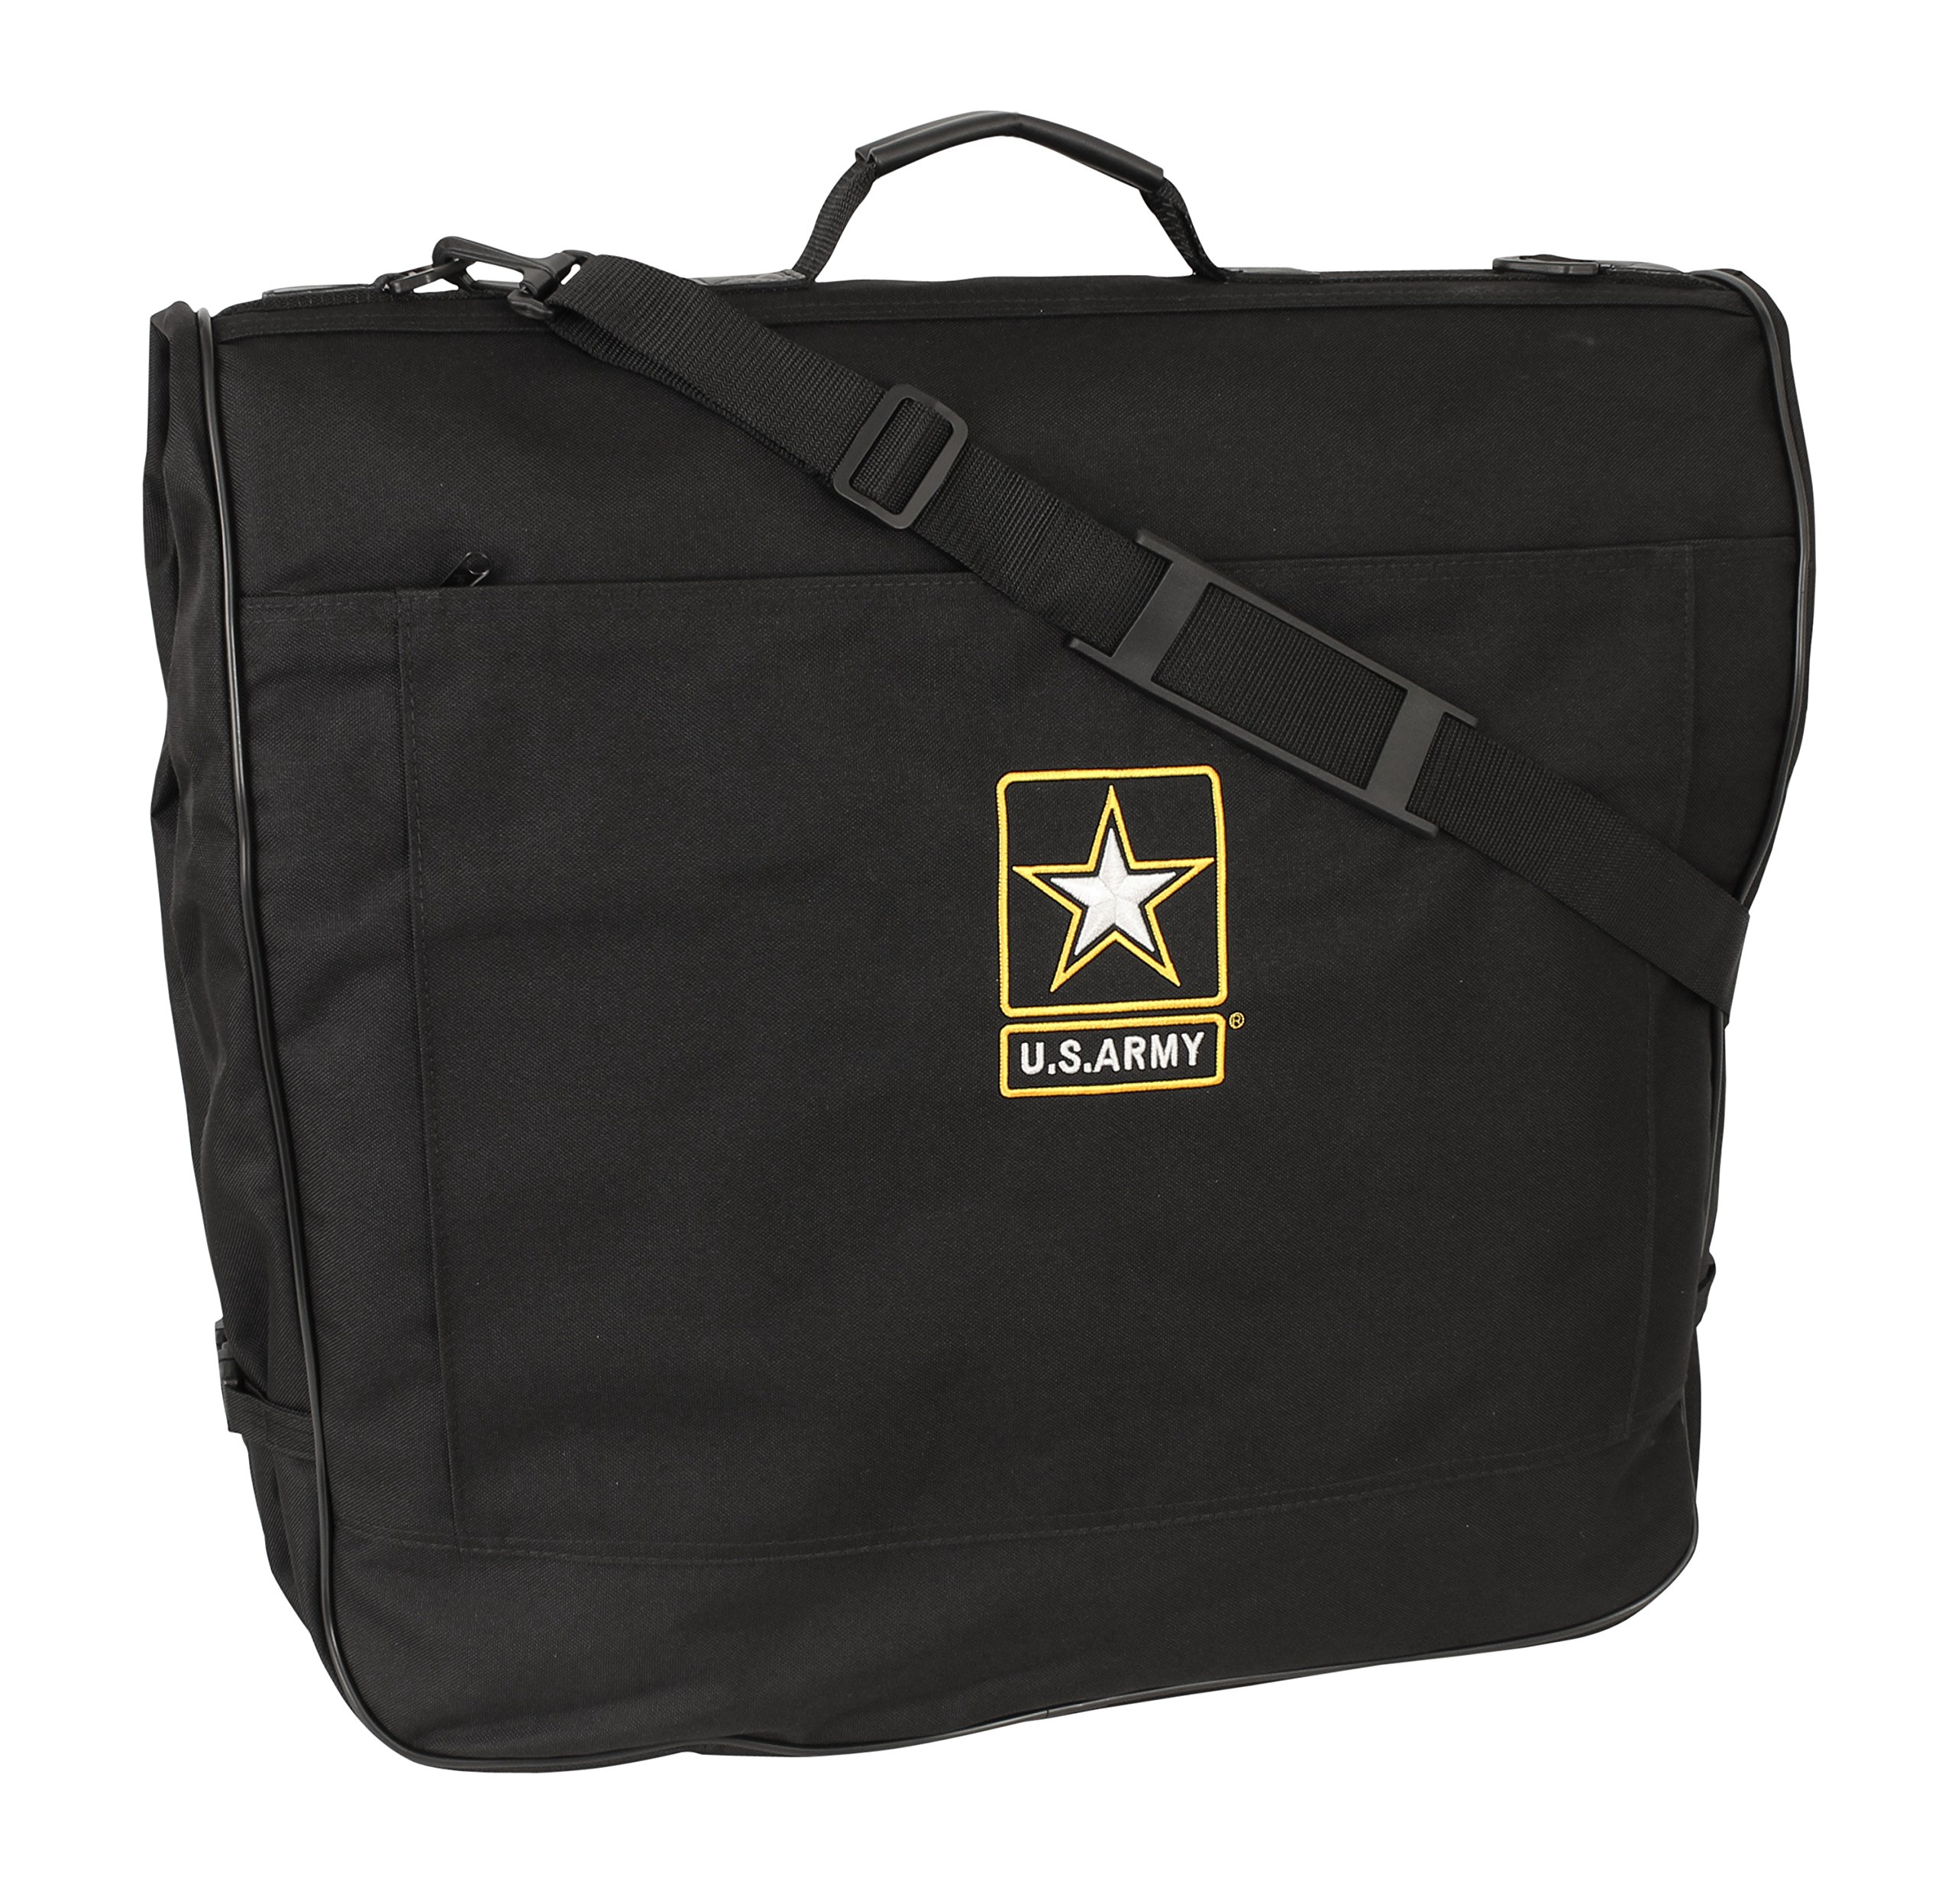 US ARMY Black Garment Bag